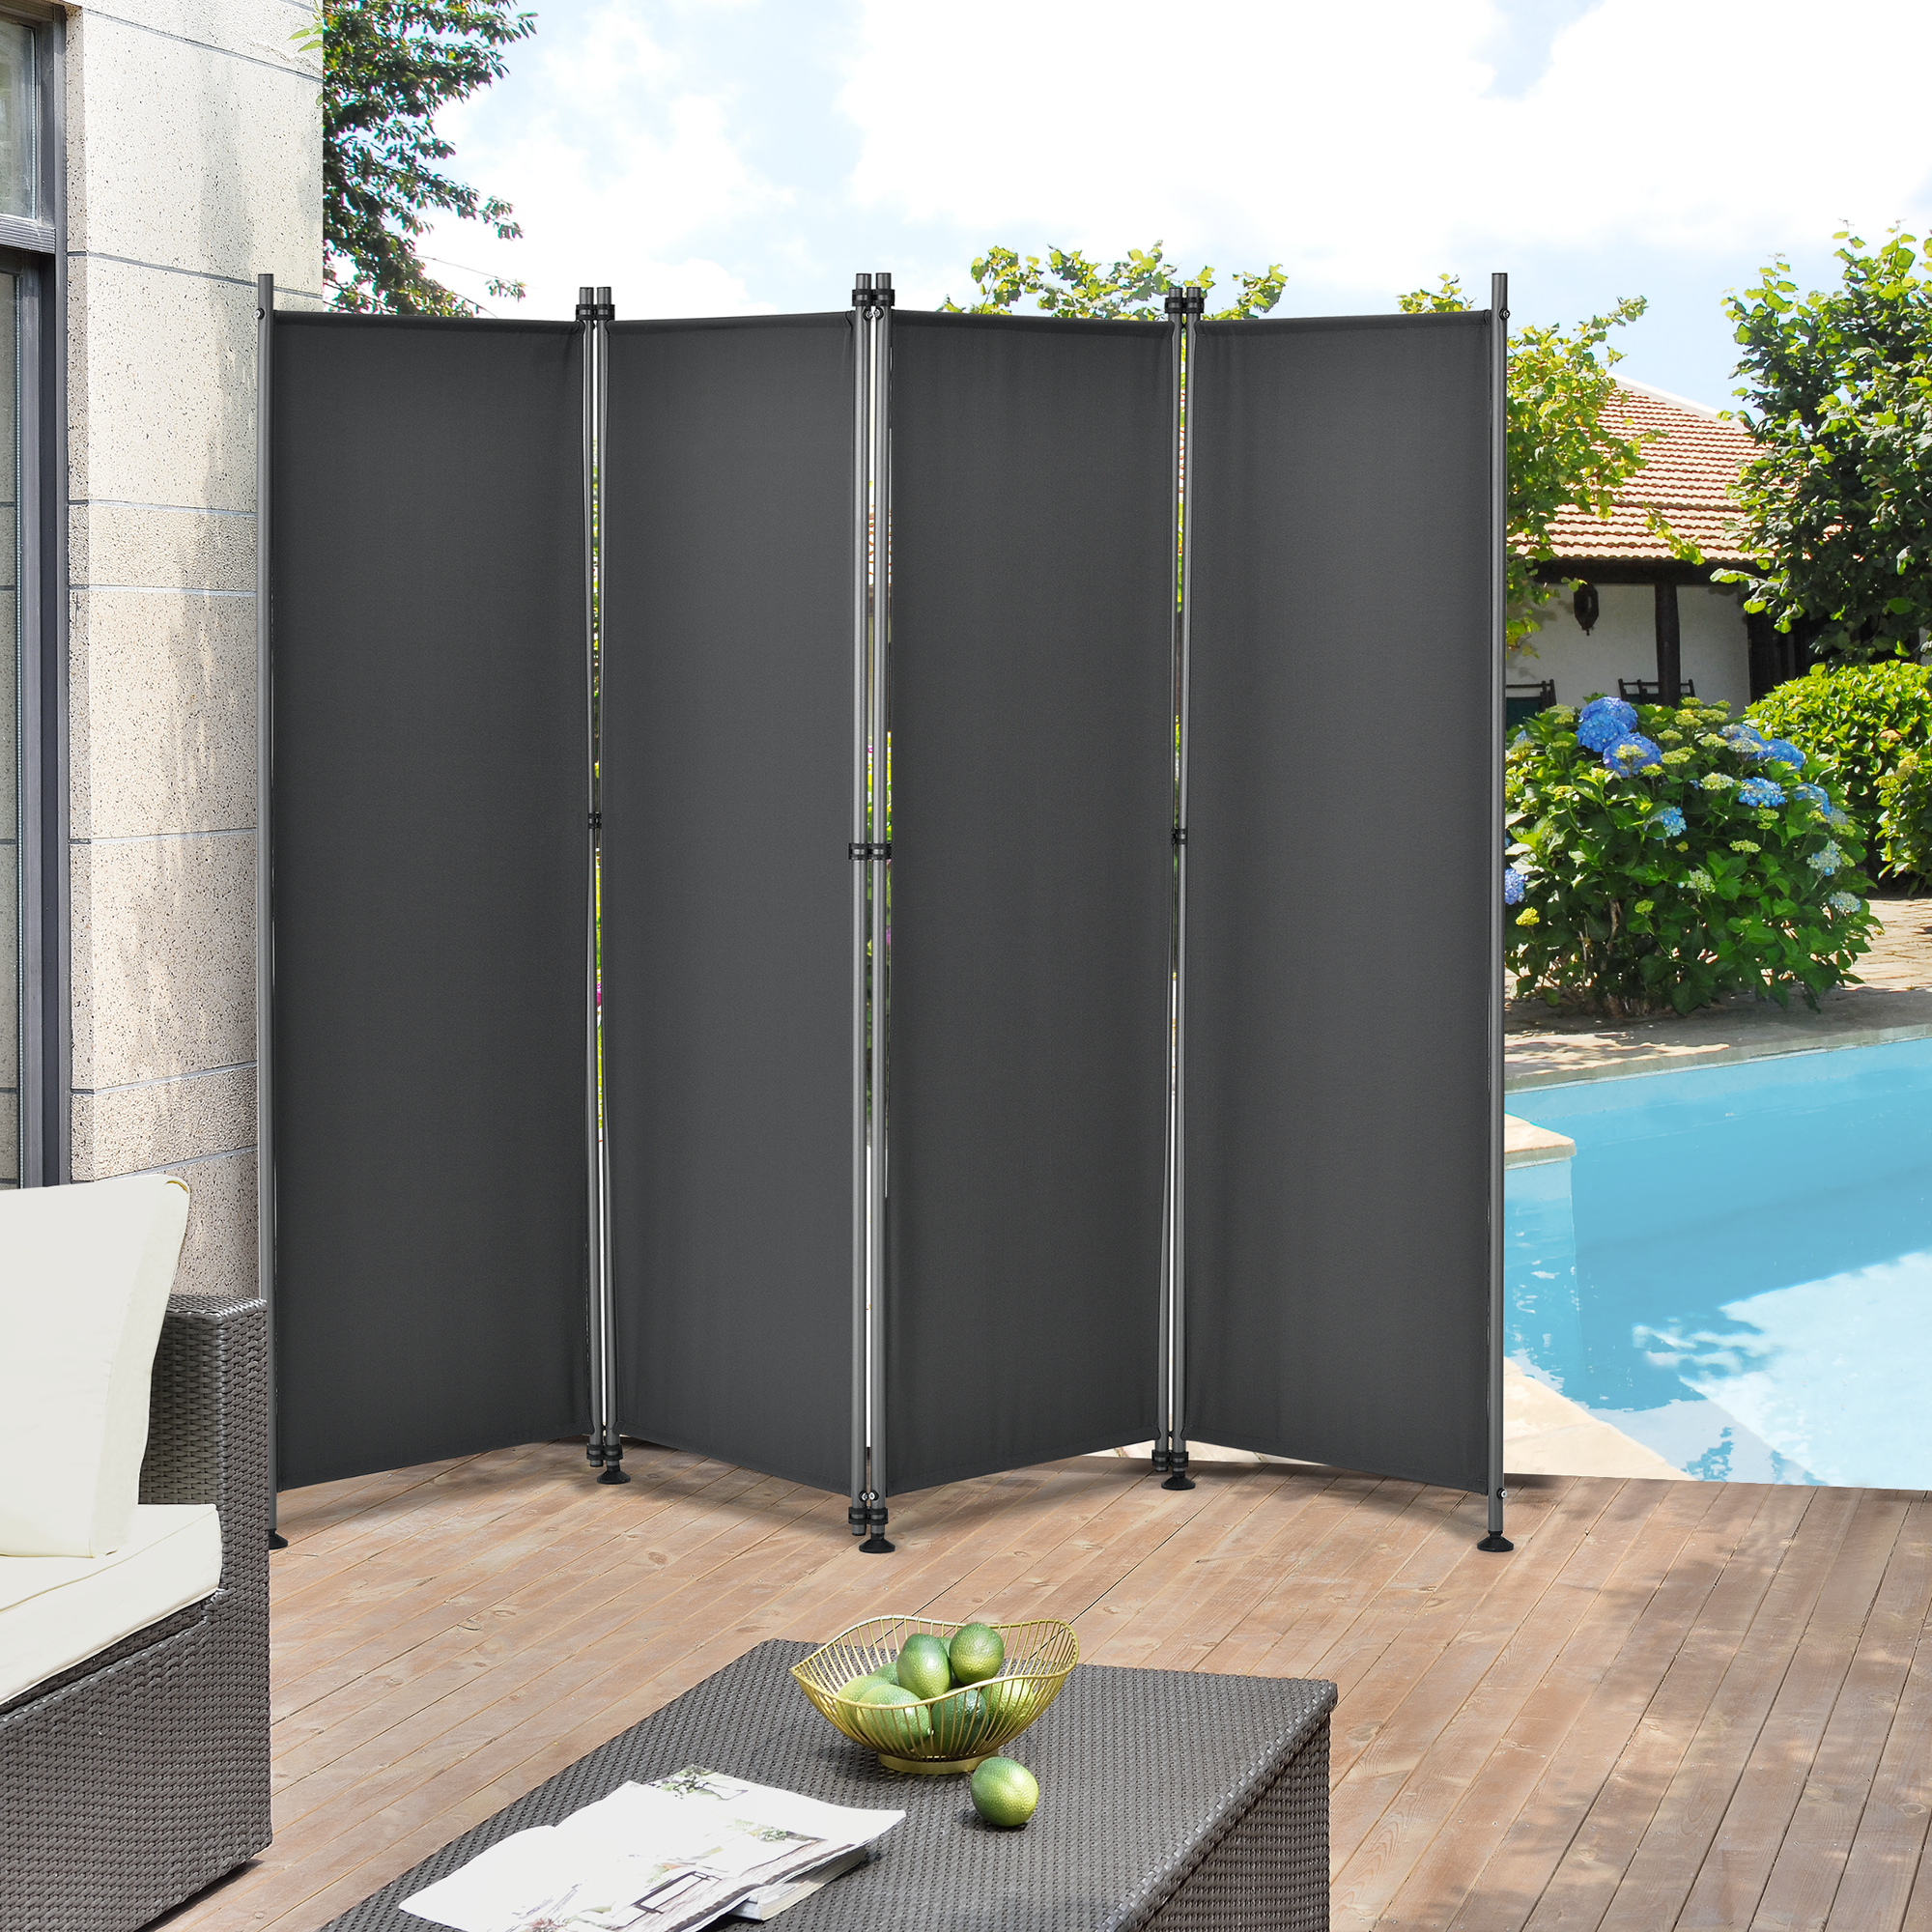 outdoor trennwand 170x215cm paravent sichtschutz spanische wand garten ebay. Black Bedroom Furniture Sets. Home Design Ideas